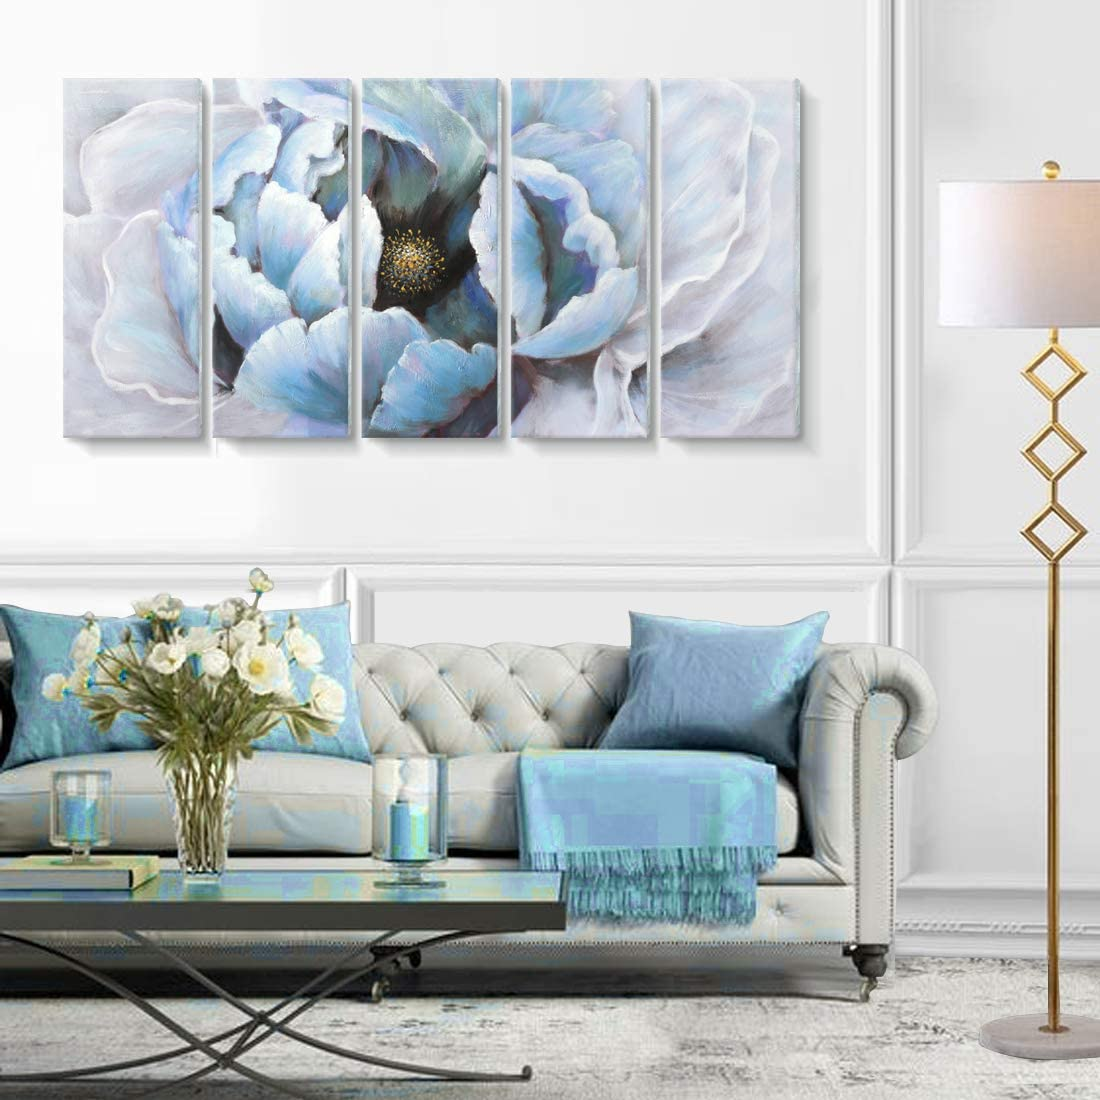 Abstract Flower painting canvas wall art pictures for living room bedroom home decor Original gray blue acrylic texture landscape decoration